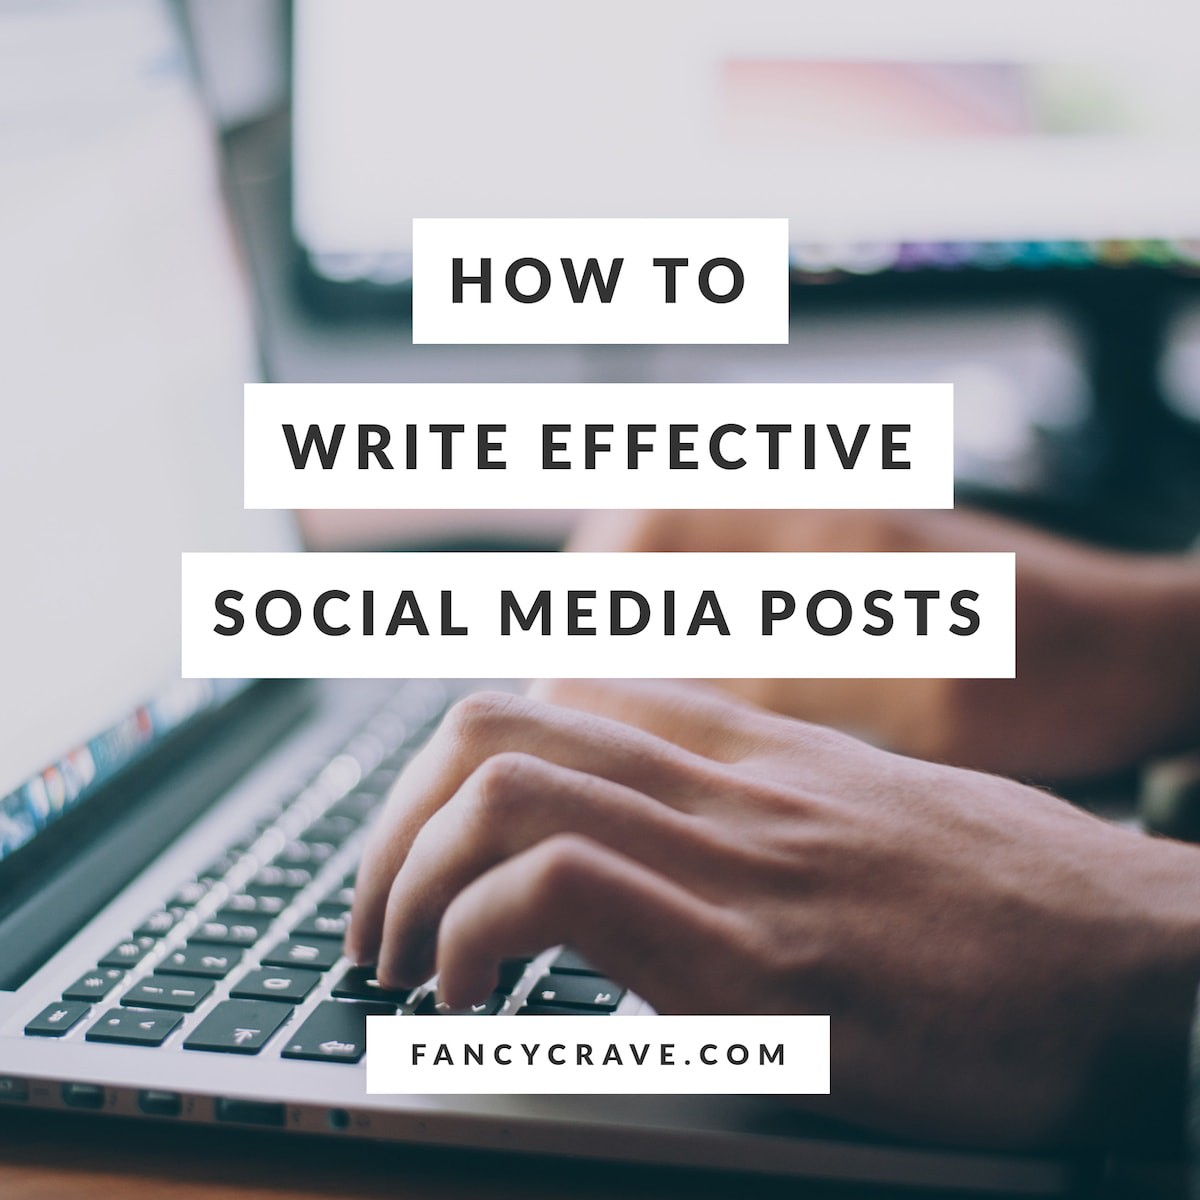 Effective social media writing means properly conveying your business or brand\'s message to the audience. Here are 5 tips to get you started.